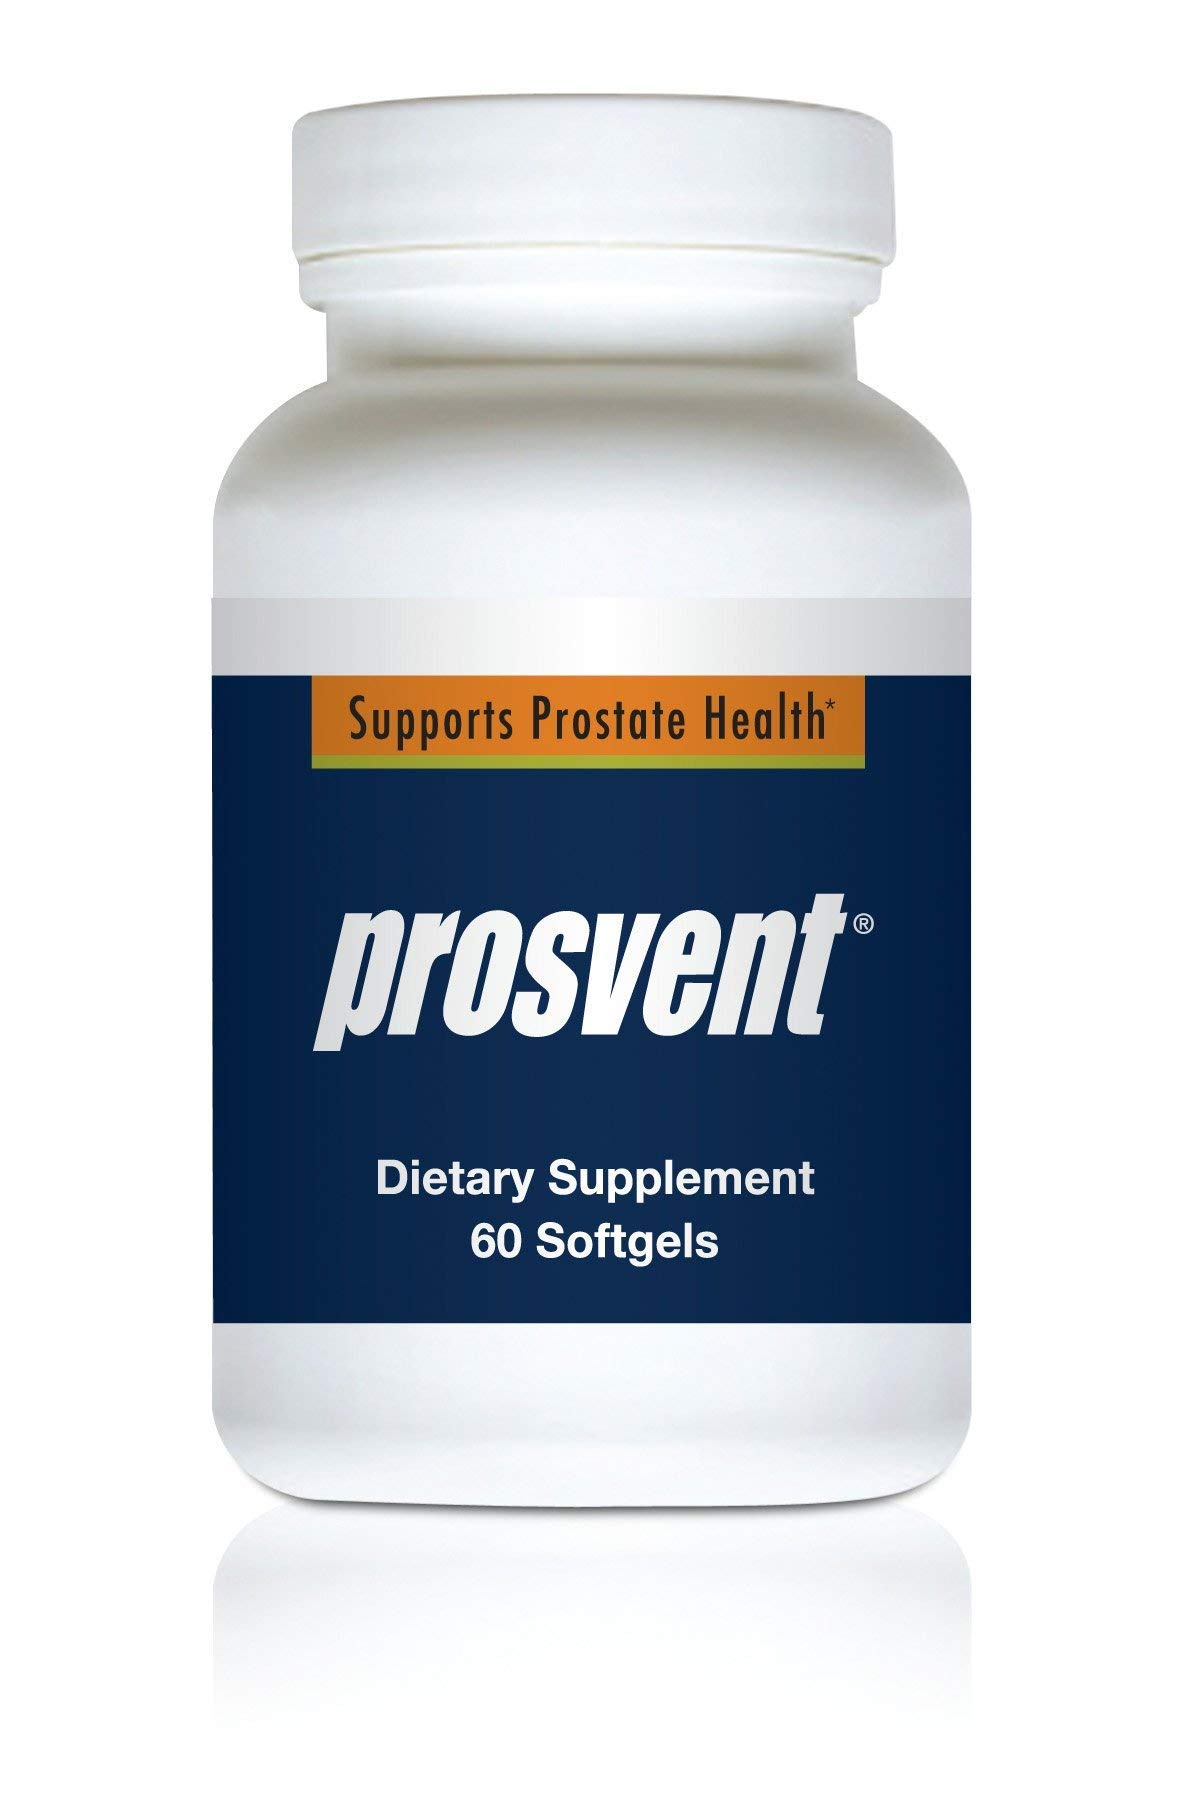 PROSVENT-Natural Prostate Health Supplement Clinically Tested Ingredients Reduce Urgency & Frequent Urination Improve Flow, Sleep, Health & Quality of Life. Over 180 Million Pills Sold 1 Month Supply by Prosvent